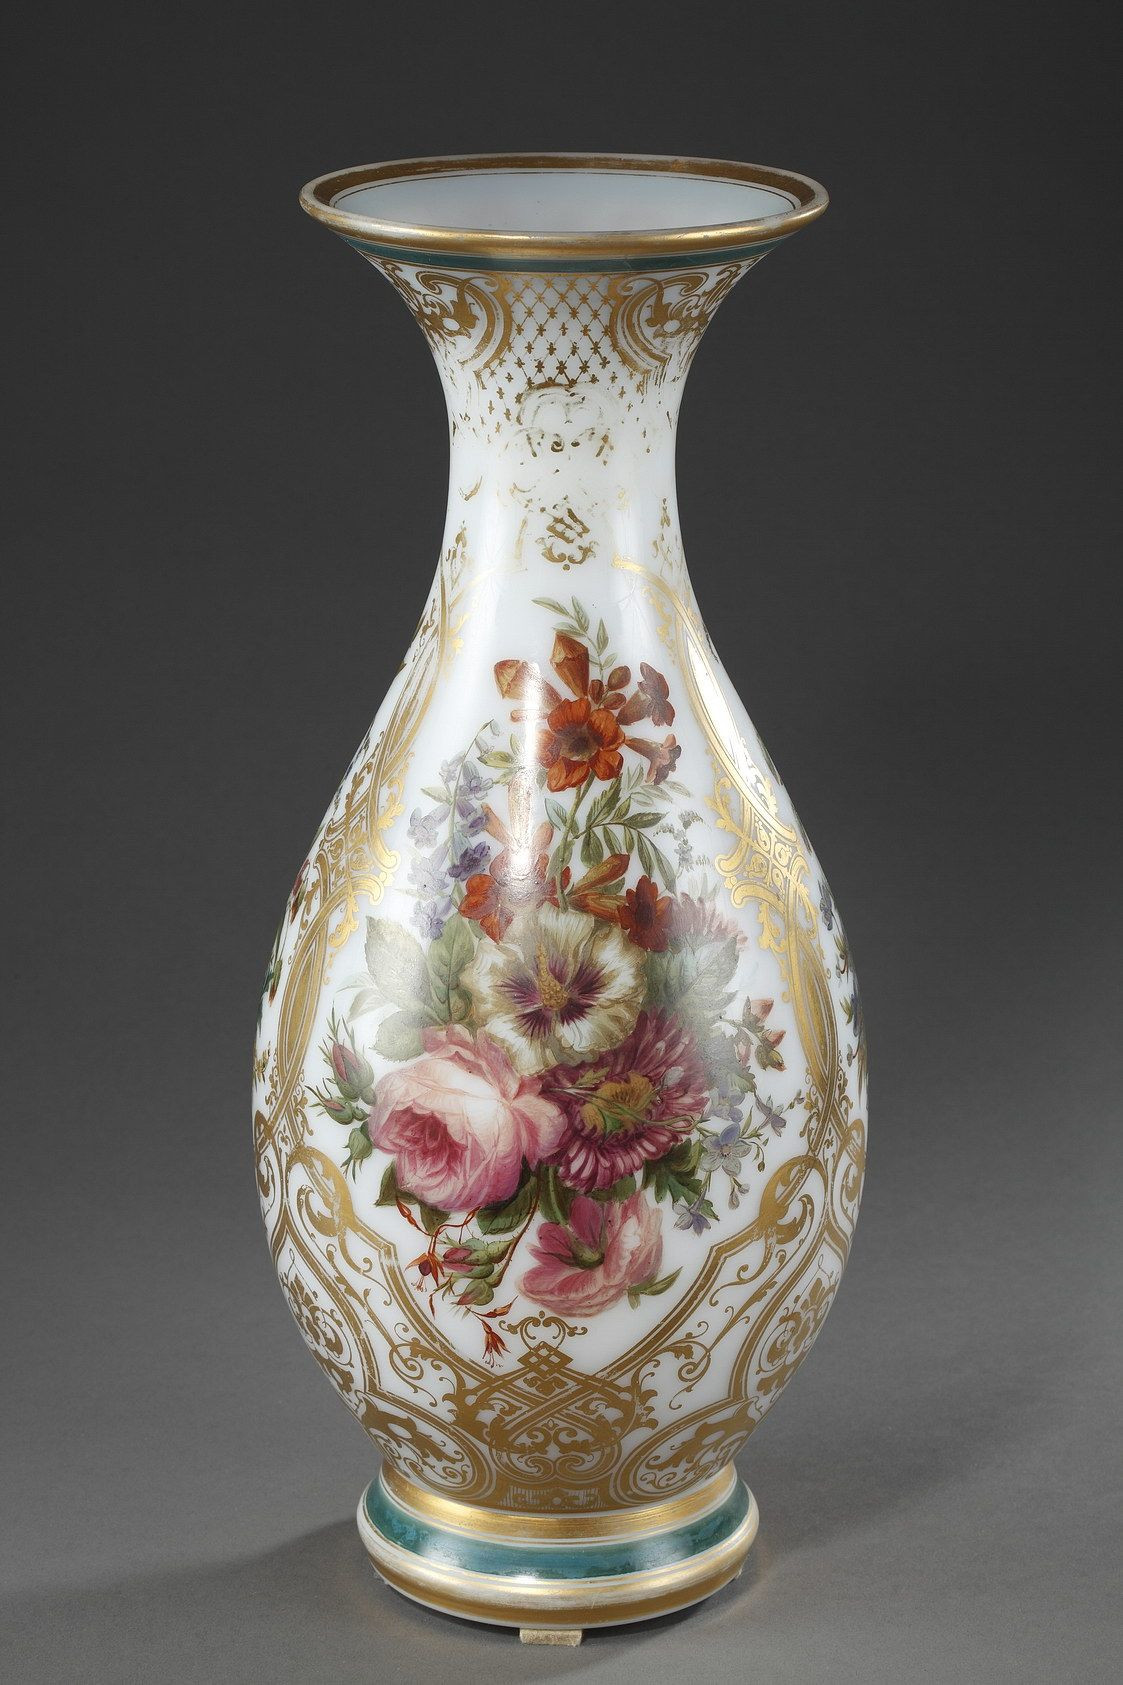 limoges vase value of vase en opaline amaillae dapoque louis philippe pinterest within a baluster shape vase in white enamelled opaline with polychromatic decoration composed of bunches of